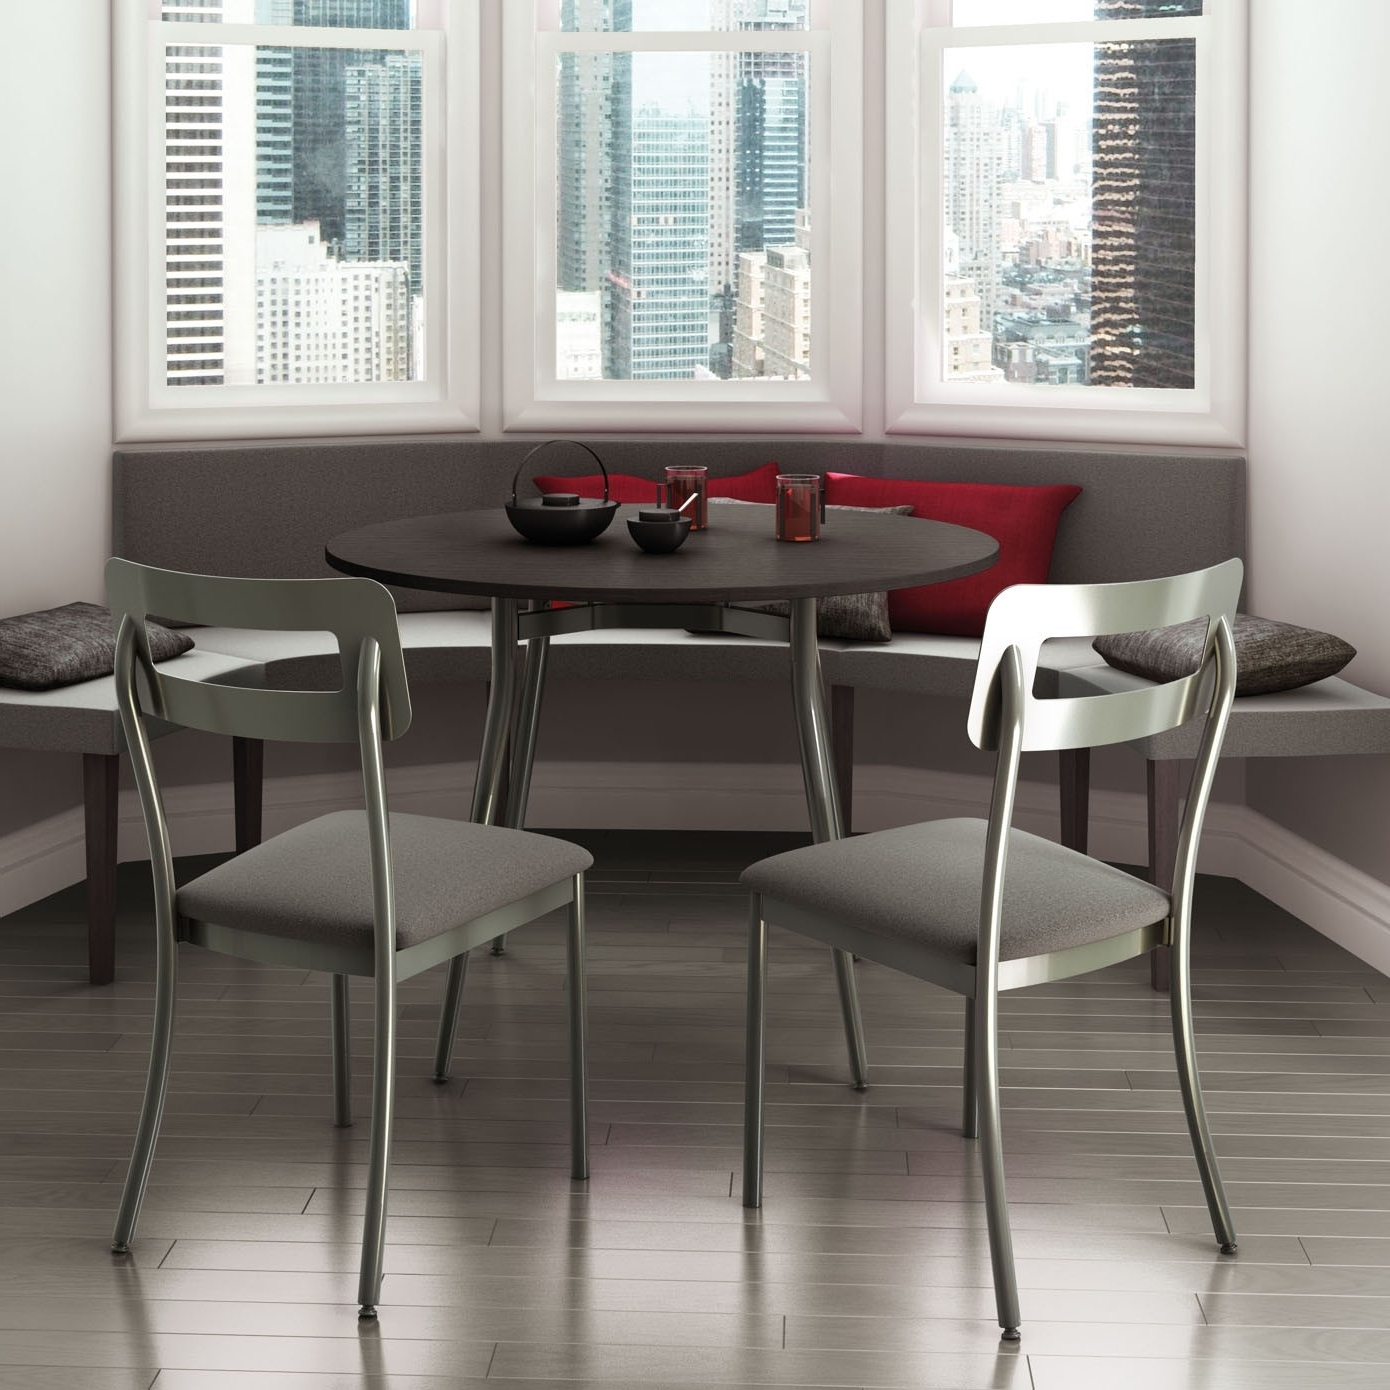 Fashionable Cora Dining Chair, Amisco Canada – Italmoda Furniture Store Within Cora Dining Tables (View 11 of 25)